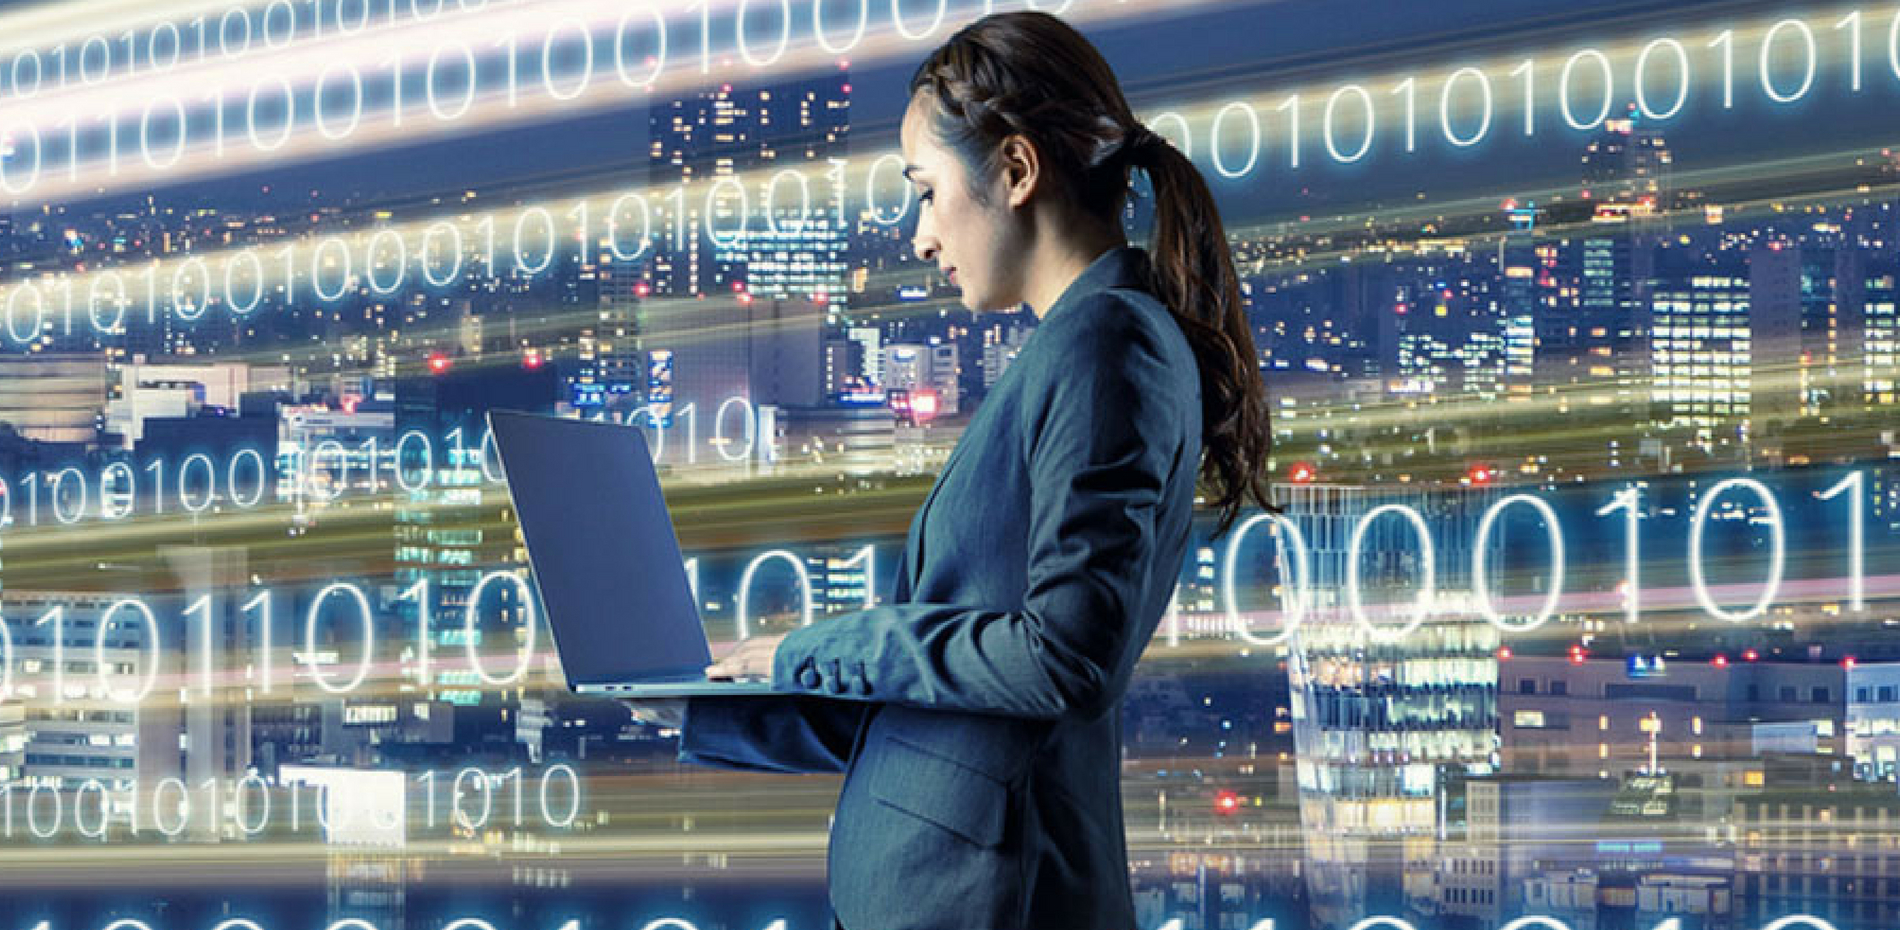 Woman standing in front of backdrop of code holding a laptop